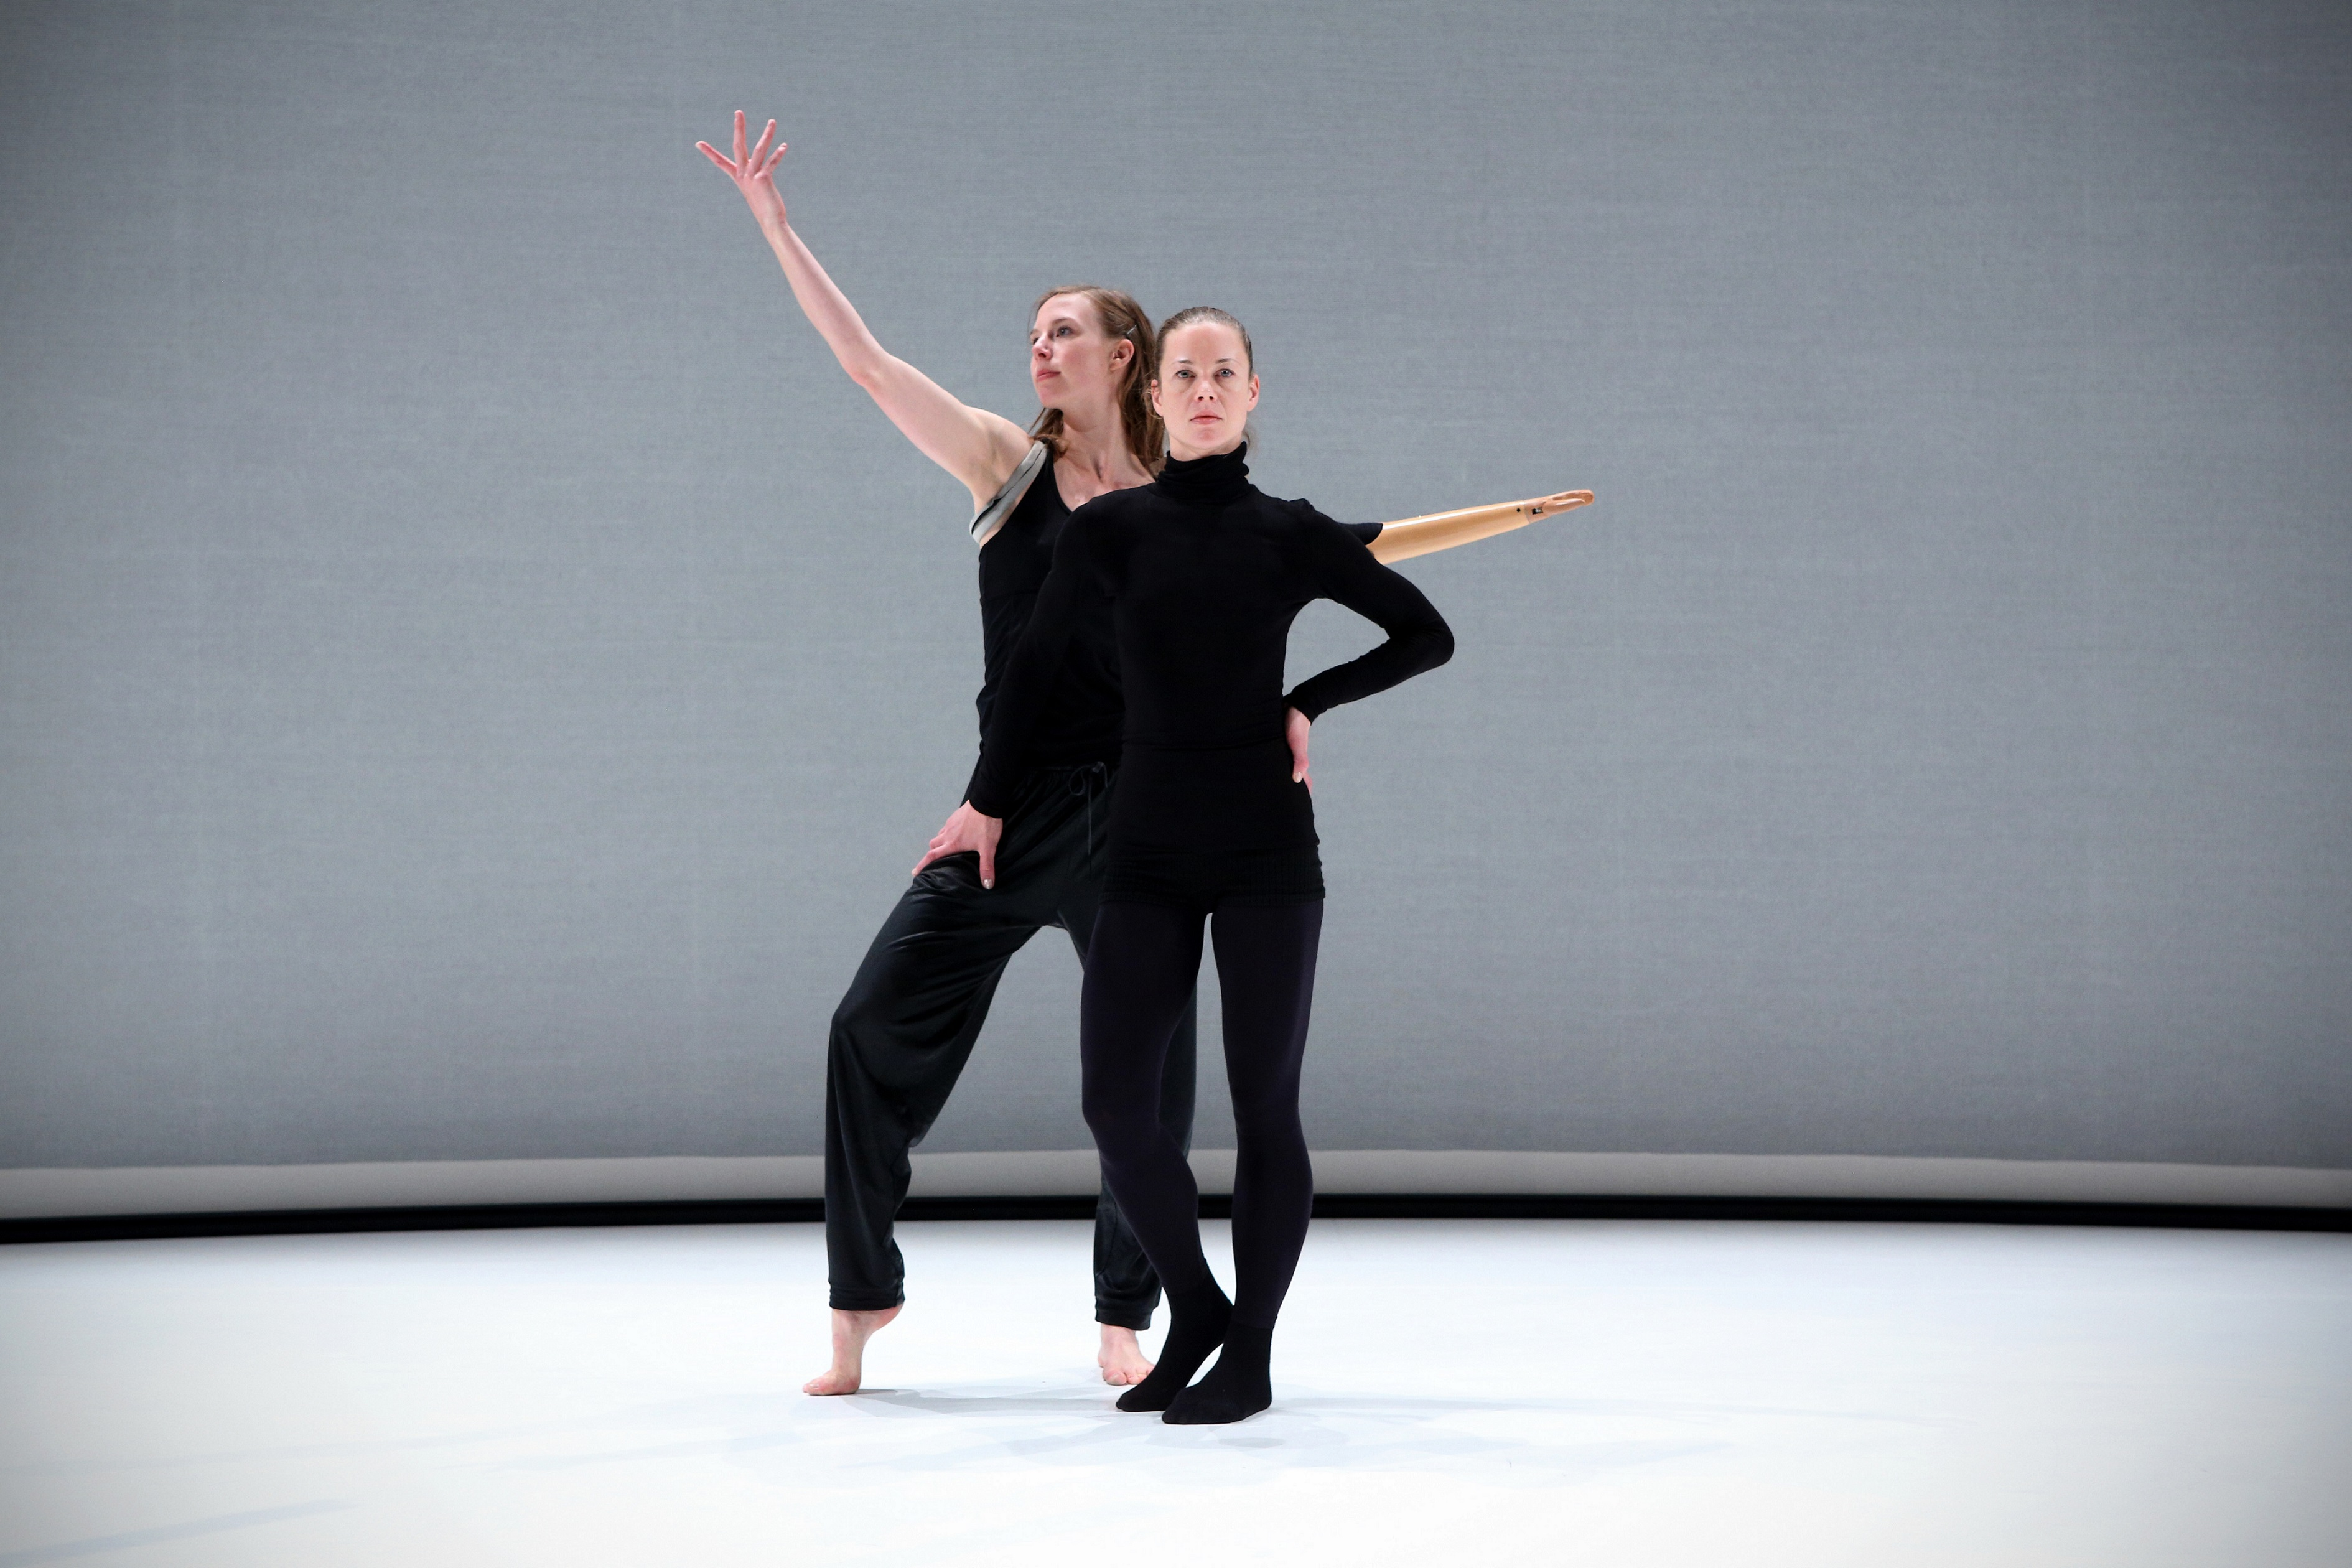 TORDRE Choreographed by Rachid Ouramdane. Credit: Patrick Imbert